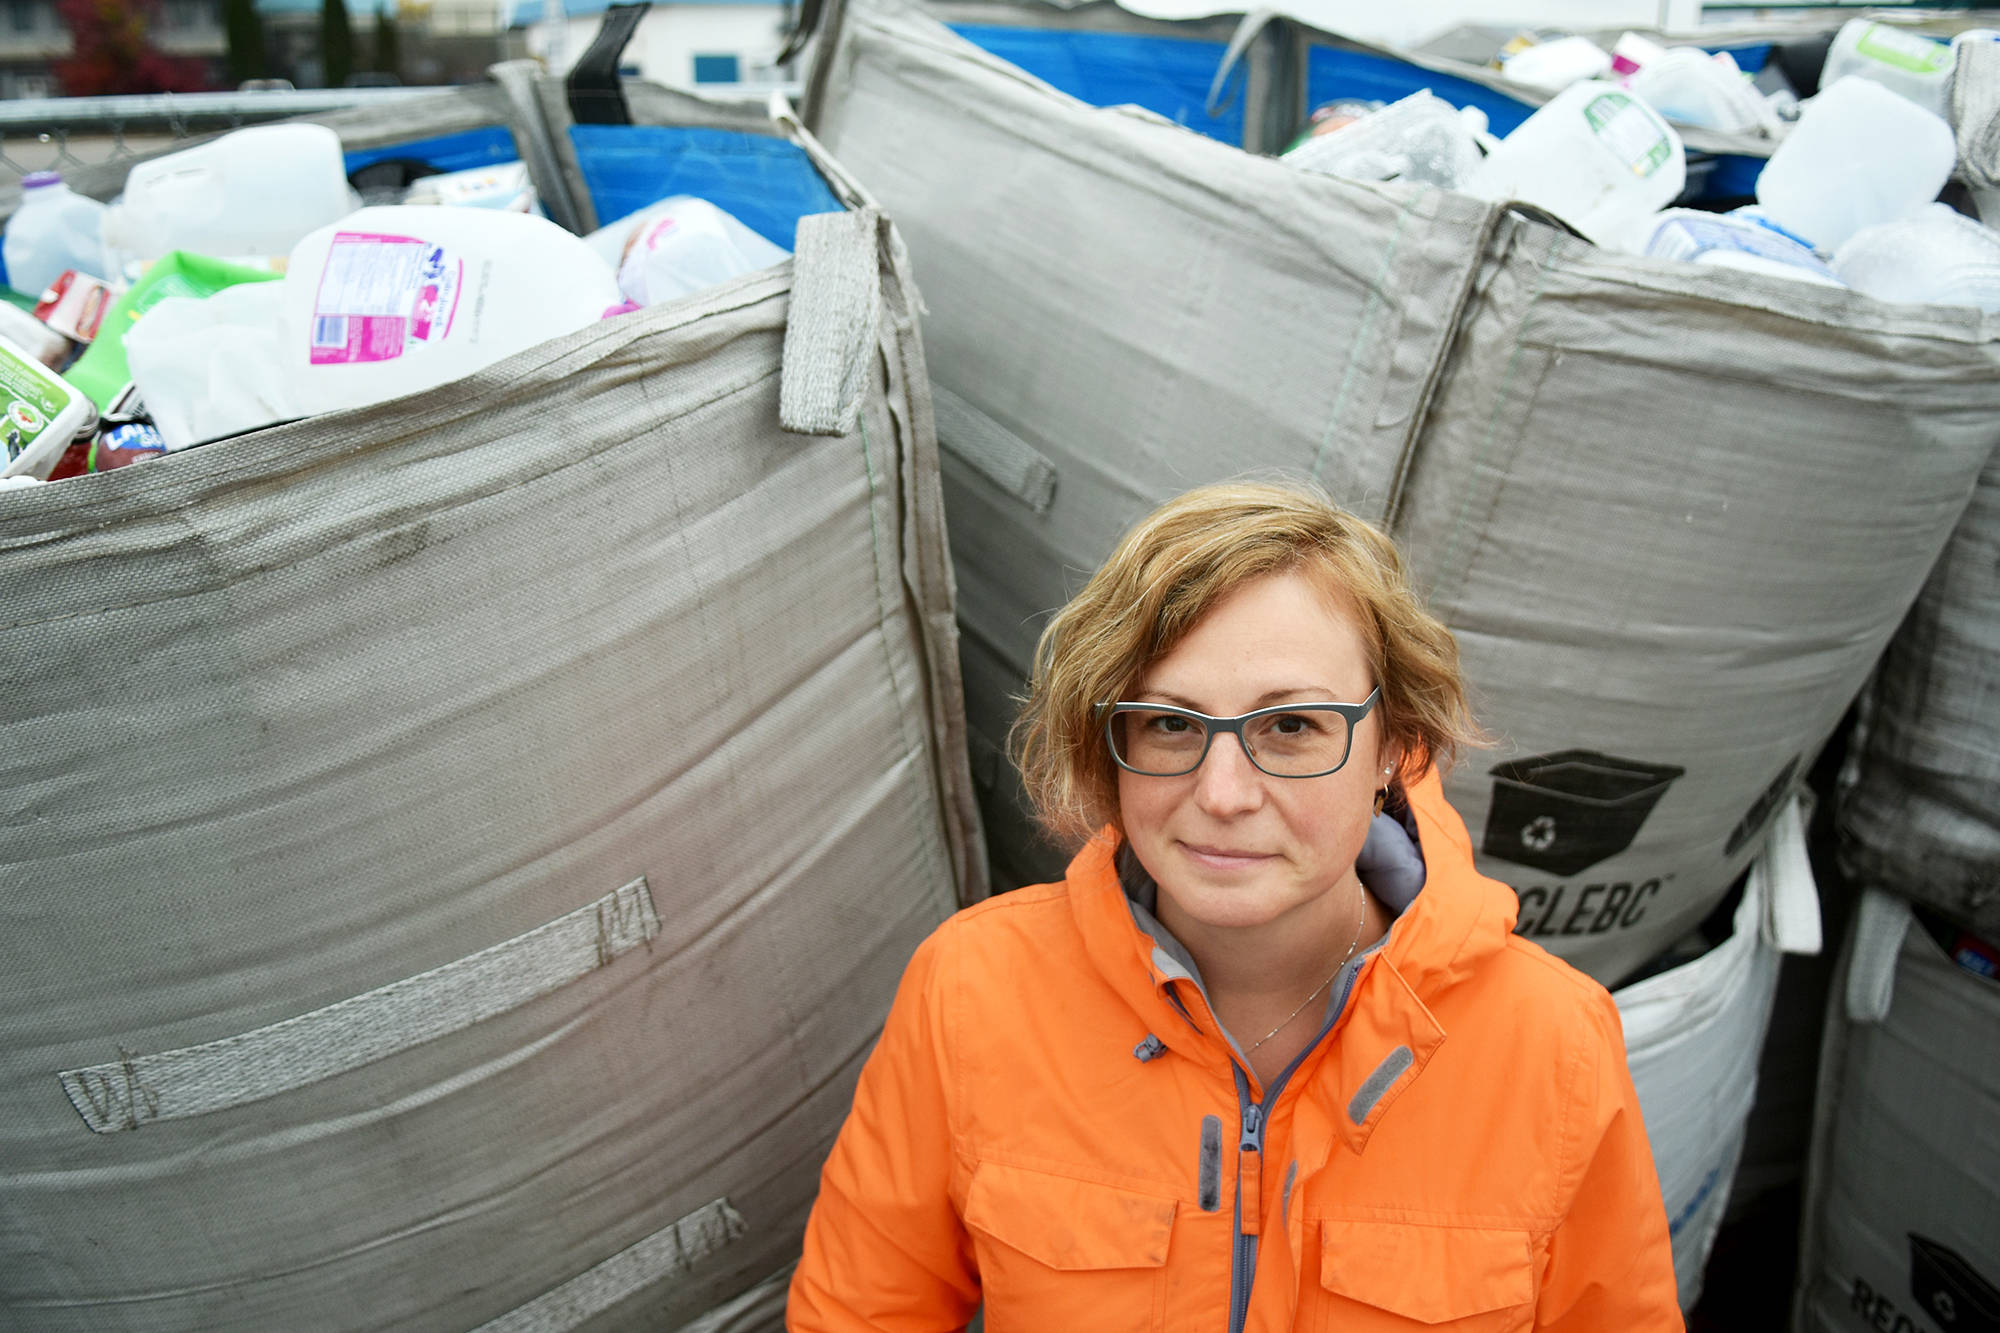 Chélie Elsom stands in front of bags of recyclable plastics in Salmon Arm, plastics that, in B.C., will be remanufactured into new items. Elsom has created a petition she hopes will be presented in the House of Common, asking for a national strategy that will prohibit the use of single-use plastic. (Lachlan Labere/Salmon Arm Observer)